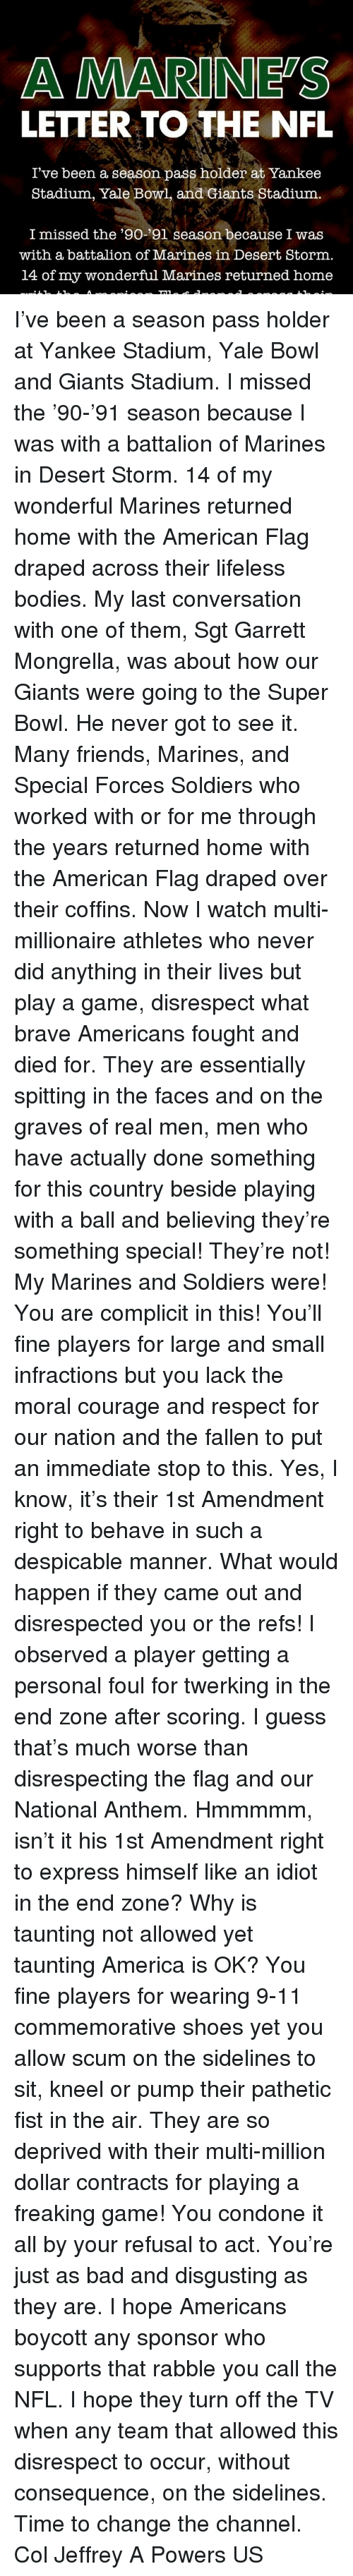 9/11, America, and Bad: A MARINES  LETTER TO THE NFL  I've been a season pass holder at Yankee  Stadium, Yale Bowl, and Giants Stadium  I missed the '90-'91 season because I was  with a battalion of Marines in Desert Storm,  14 of my wonderful Marines returned home I've been a season pass holder at Yankee Stadium, Yale Bowl and Giants Stadium. I missed the '90-'91 season because I was with a battalion of Marines in Desert Storm. 14 of my wonderful Marines returned home with the American Flag draped across their lifeless bodies. My last conversation with one of them, Sgt Garrett Mongrella, was about how our Giants were going to the Super Bowl. He never got to see it. Many friends, Marines, and Special Forces Soldiers who worked with or for me through the years returned home with the American Flag draped over their coffins. Now I watch multi-millionaire athletes who never did anything in their lives but play a game, disrespect what brave Americans fought and died for. They are essentially spitting in the faces and on the graves of real men, men who have actually done something for this country beside playing with a ball and believing they're something special! They're not! My Marines and Soldiers were! You are complicit in this! You'll fine players for large and small infractions but you lack the moral courage and respect for our nation and the fallen to put an immediate stop to this. Yes, I know, it's their 1st Amendment right to behave in such a despicable manner. What would happen if they came out and disrespected you or the refs! I observed a player getting a personal foul for twerking in the end zone after scoring. I guess that's much worse than disrespecting the flag and our National Anthem. Hmmmmm, isn't it his 1st Amendment right to express himself like an idiot in the end zone? Why is taunting not allowed yet taunting America is OK? You fine players for wearing 9-11 commemorative shoes yet you allow scum on the sidelines to sit, kneel or pump their pathetic f